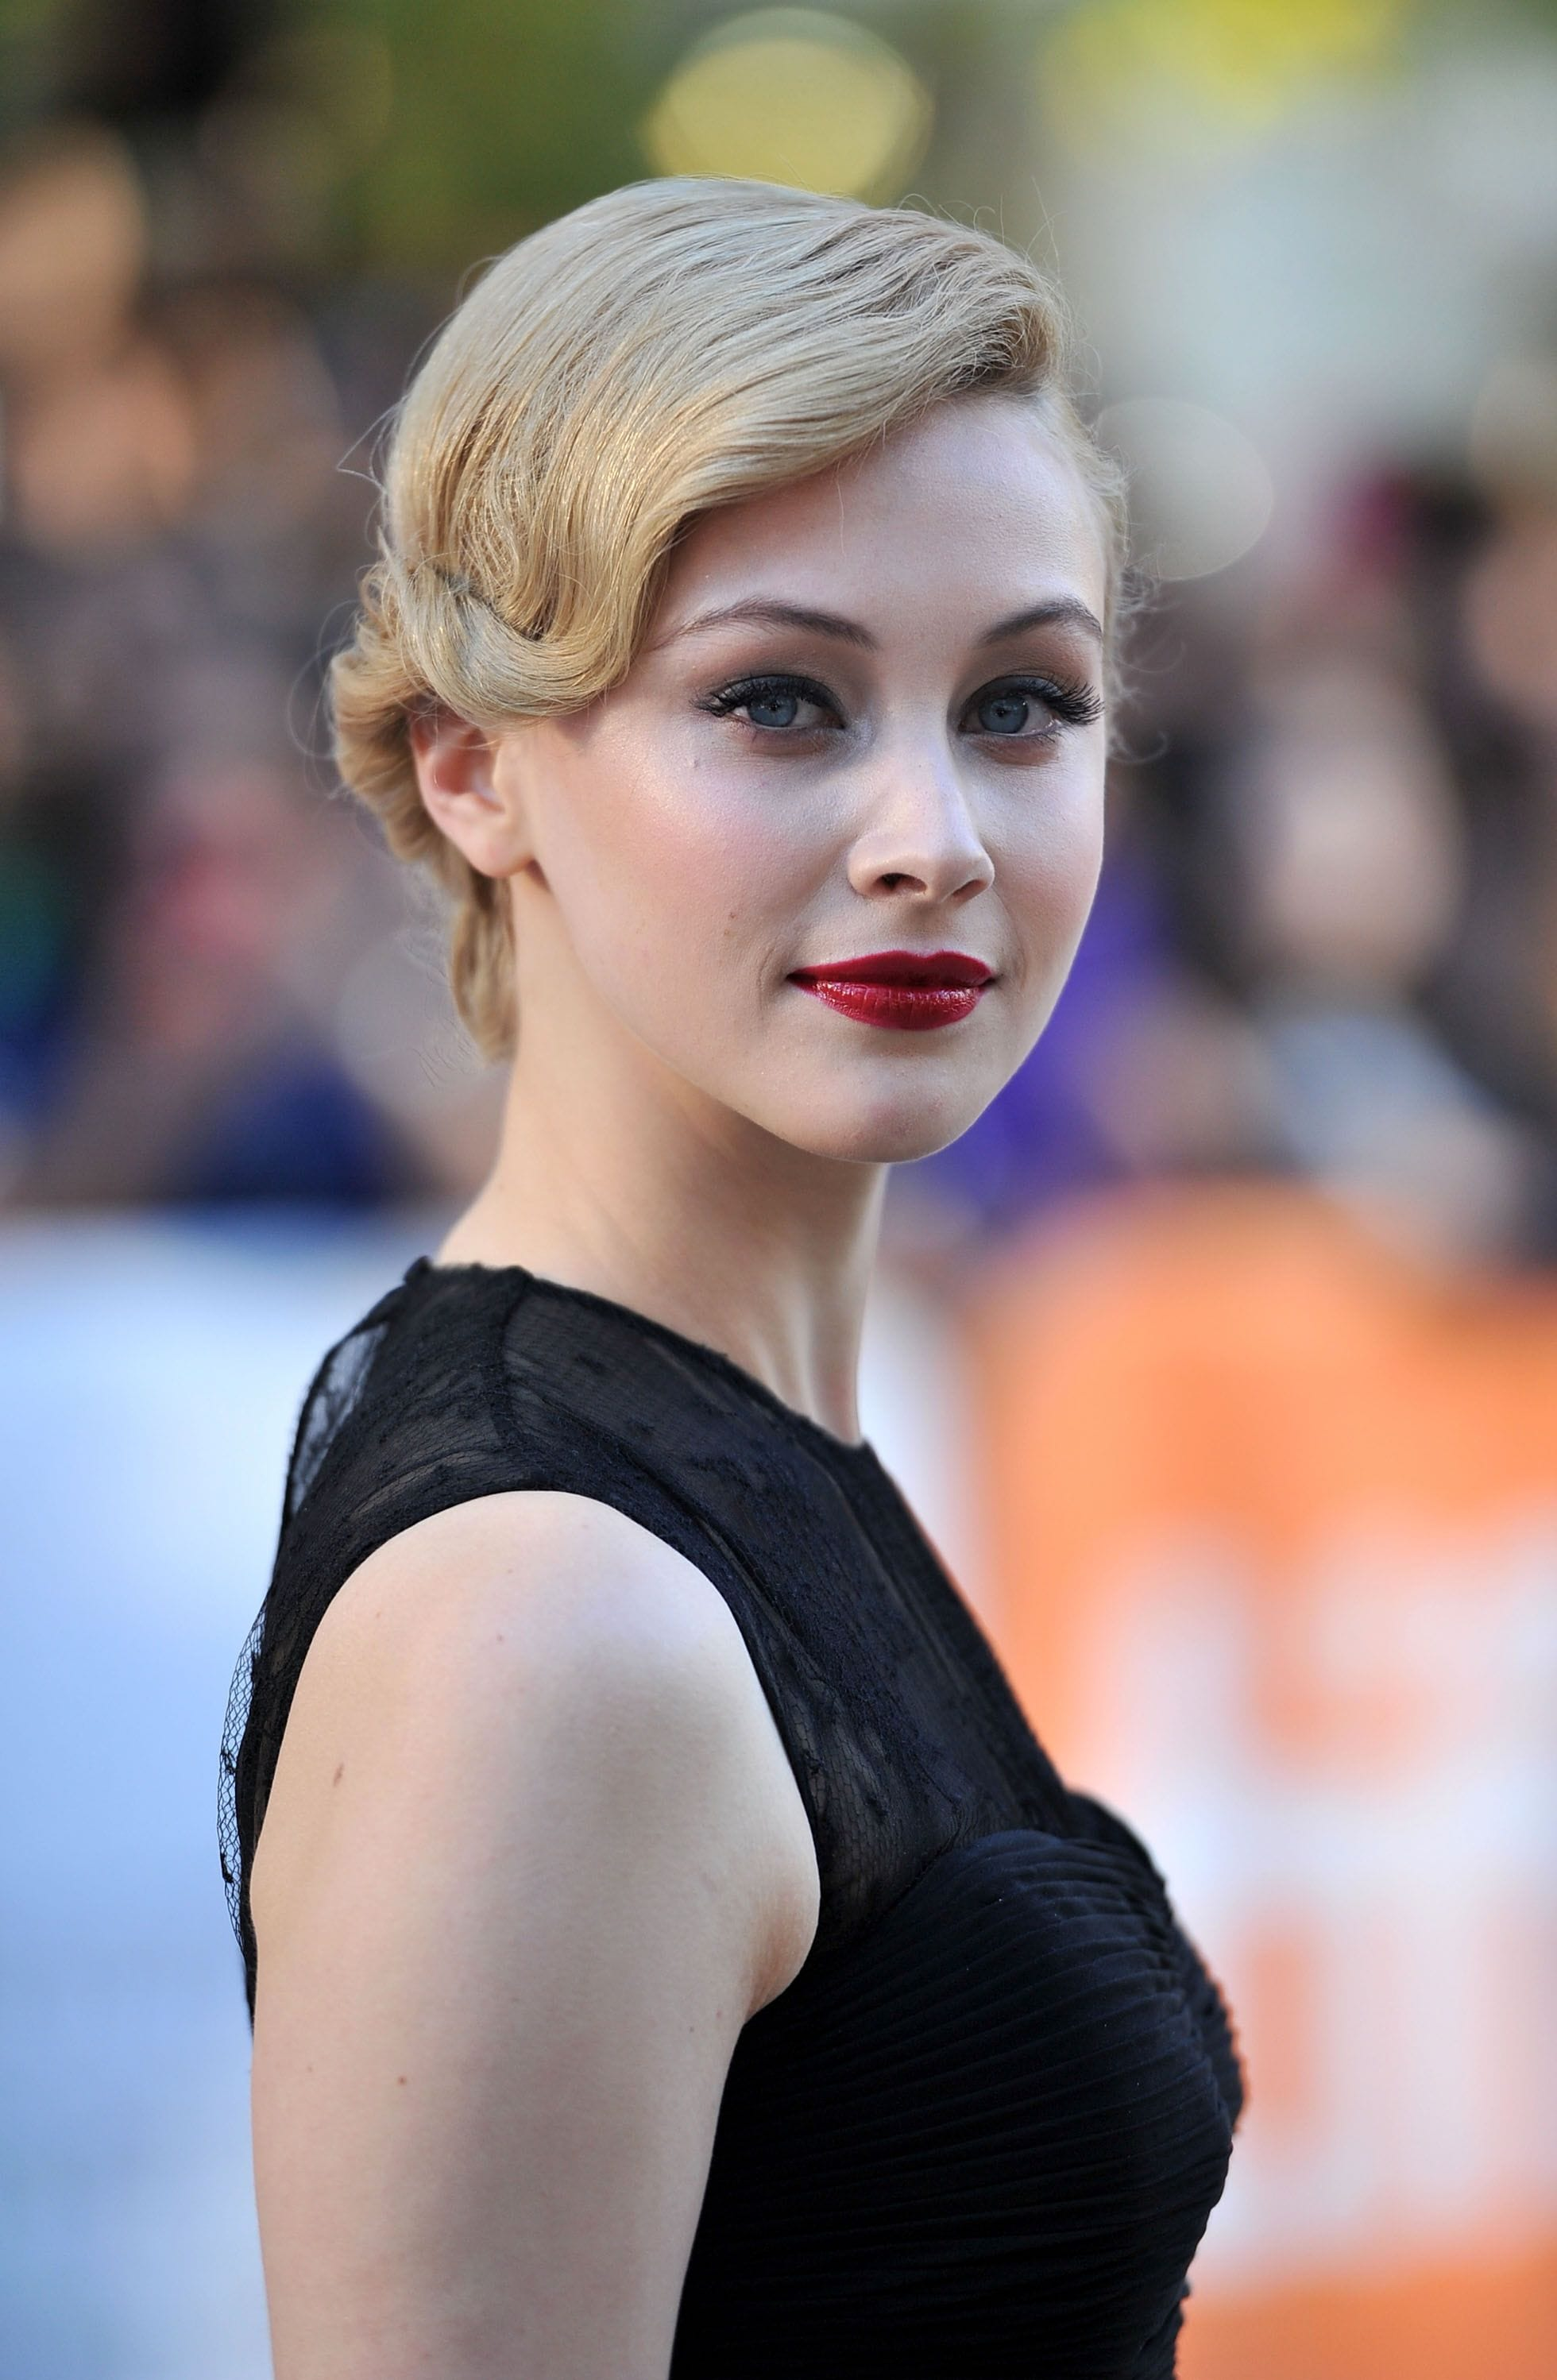 Sarah Gadons Backgrounds